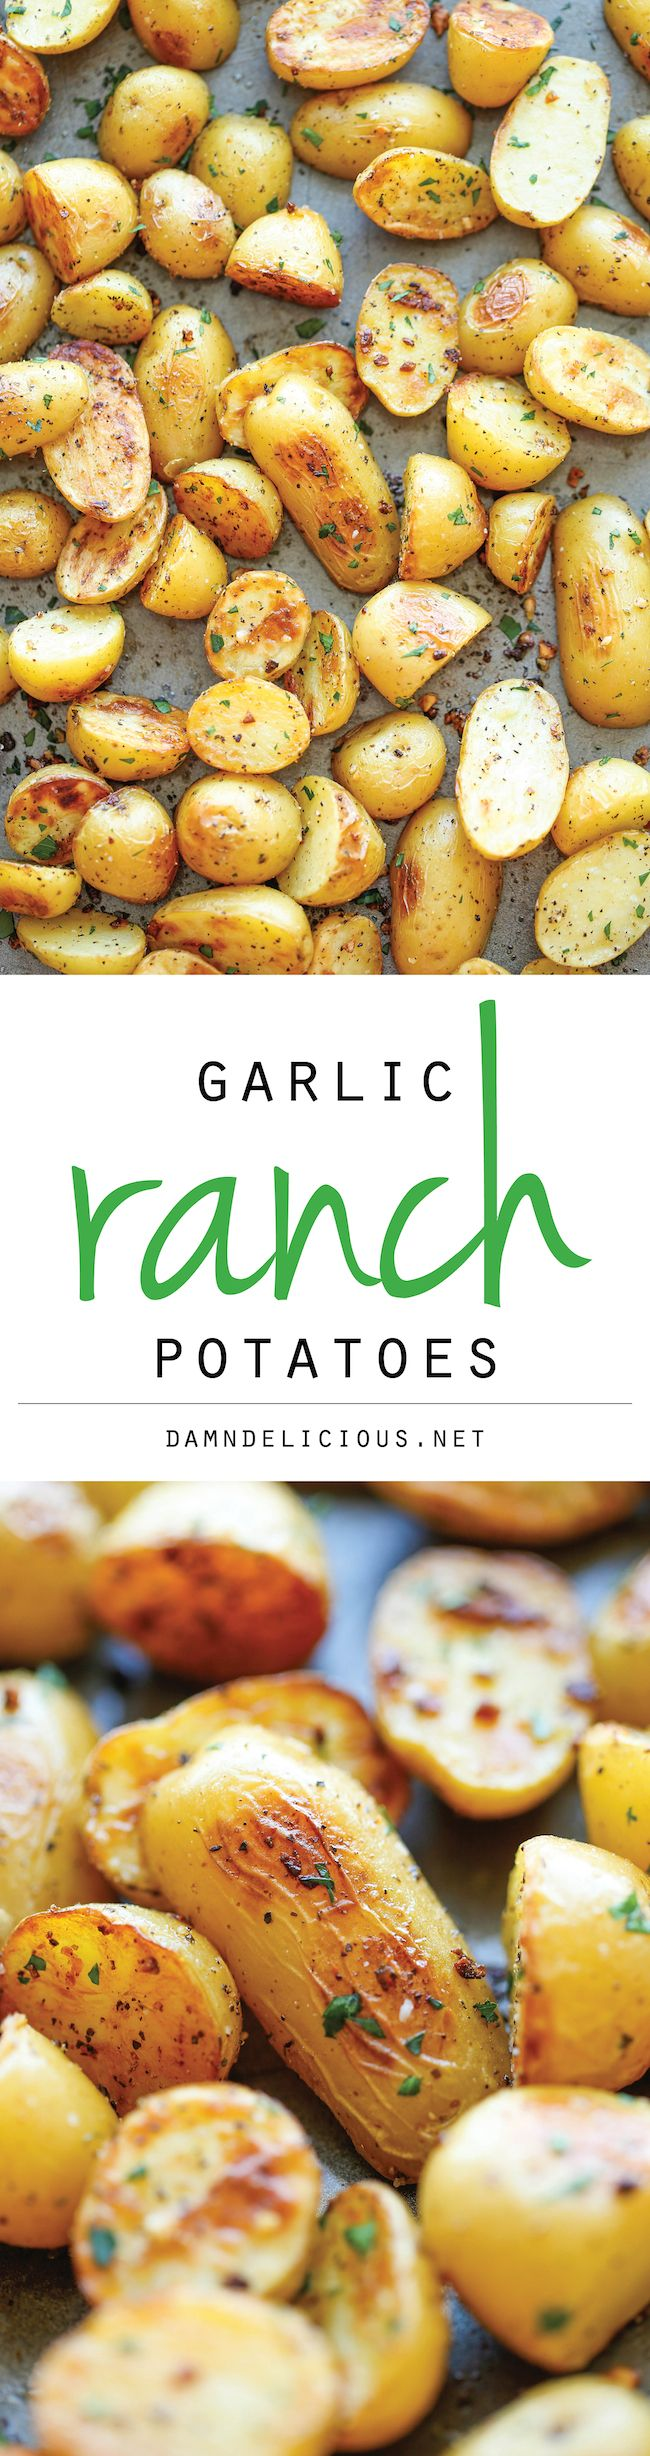 Garlic Ranch Potatoes - The best and easiest way to roast potatoes with garlic and ranch. // Potatoes are my kryptonite.